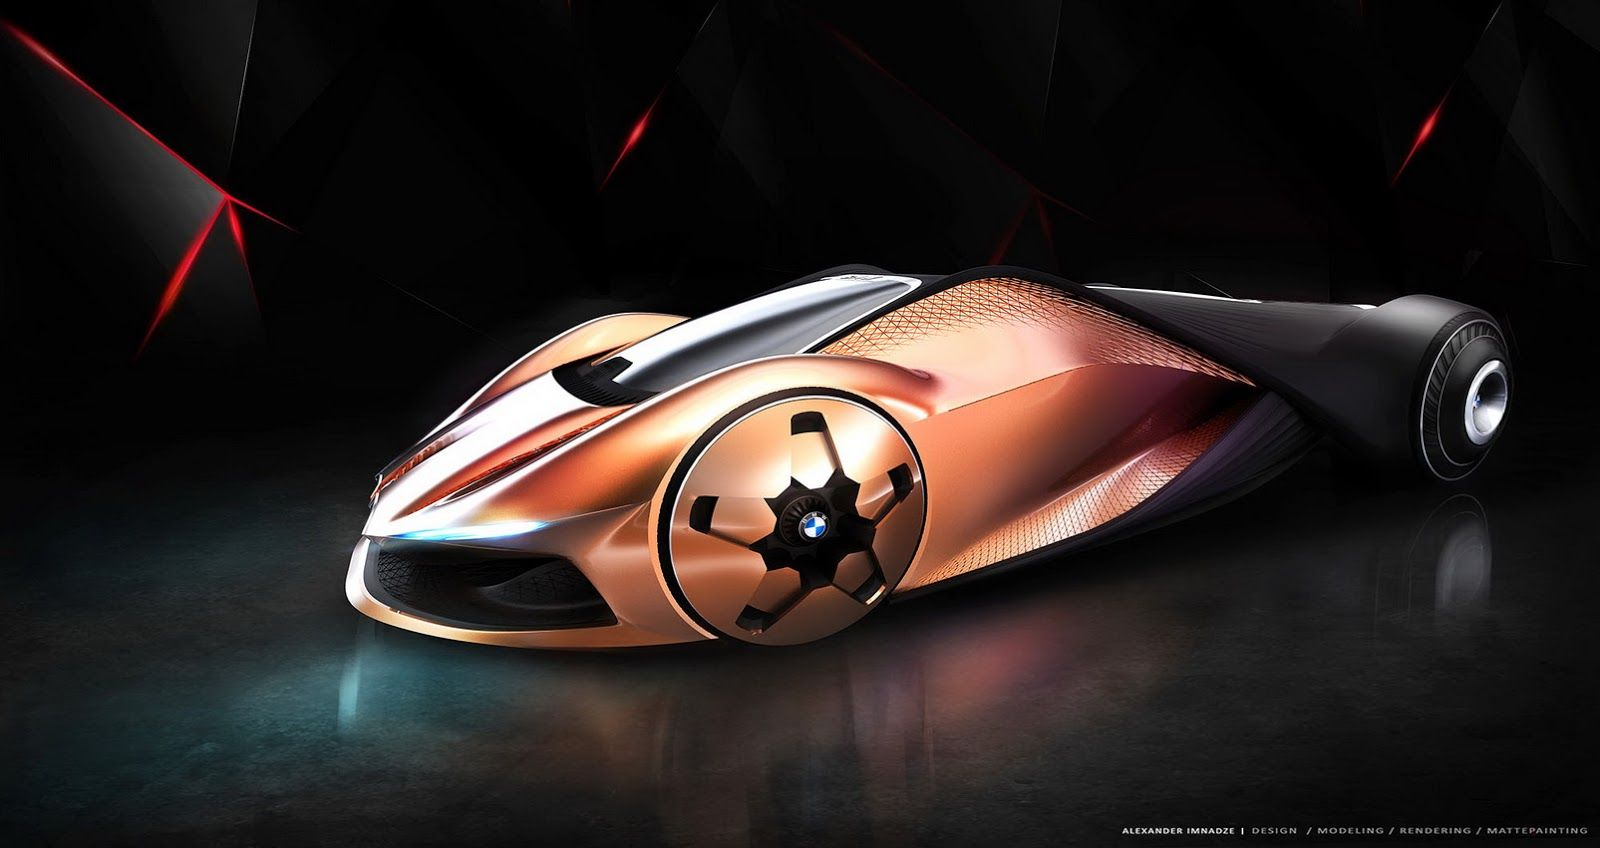 This Bmw M1 Shark Concept Study Come From The Year 2080 Carscoops Bmw M1 Concept Car Design Bmw